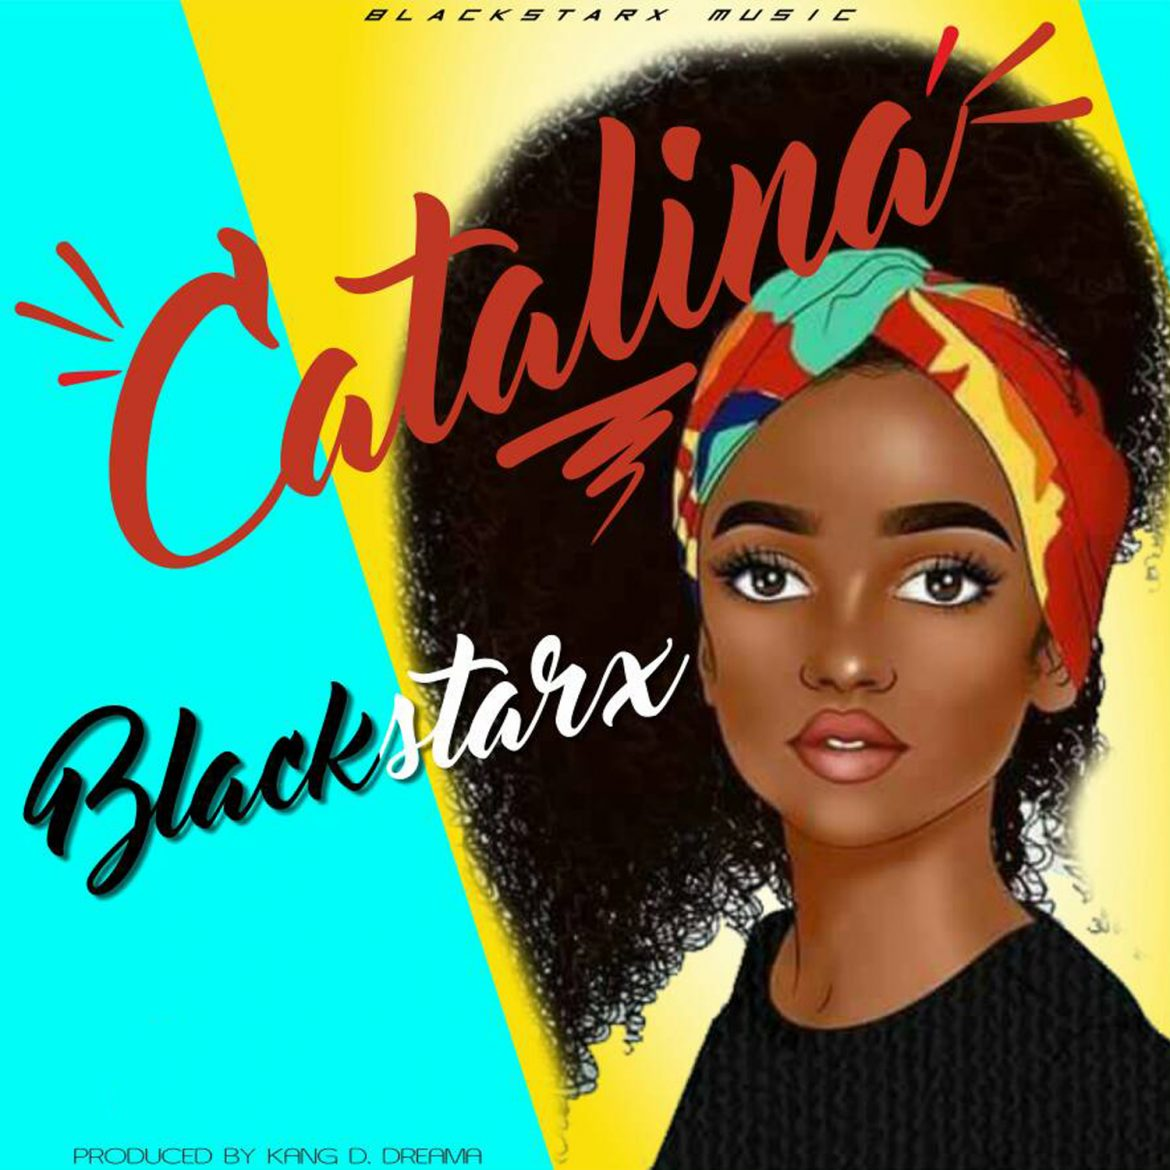 Blackstarx music - Catalina